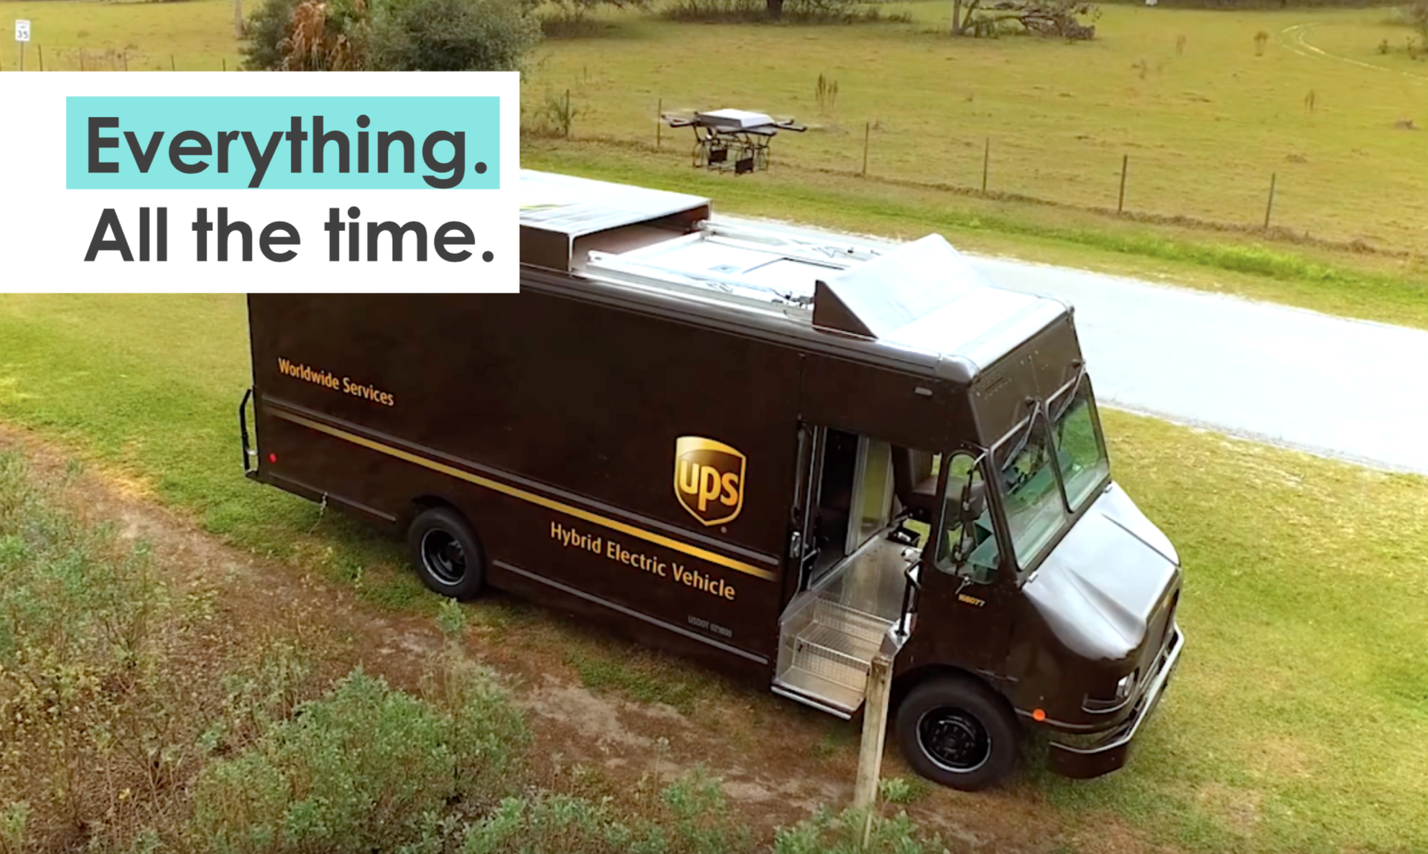 A UPS driver delivers a parcel with autonomous vehicles with drones